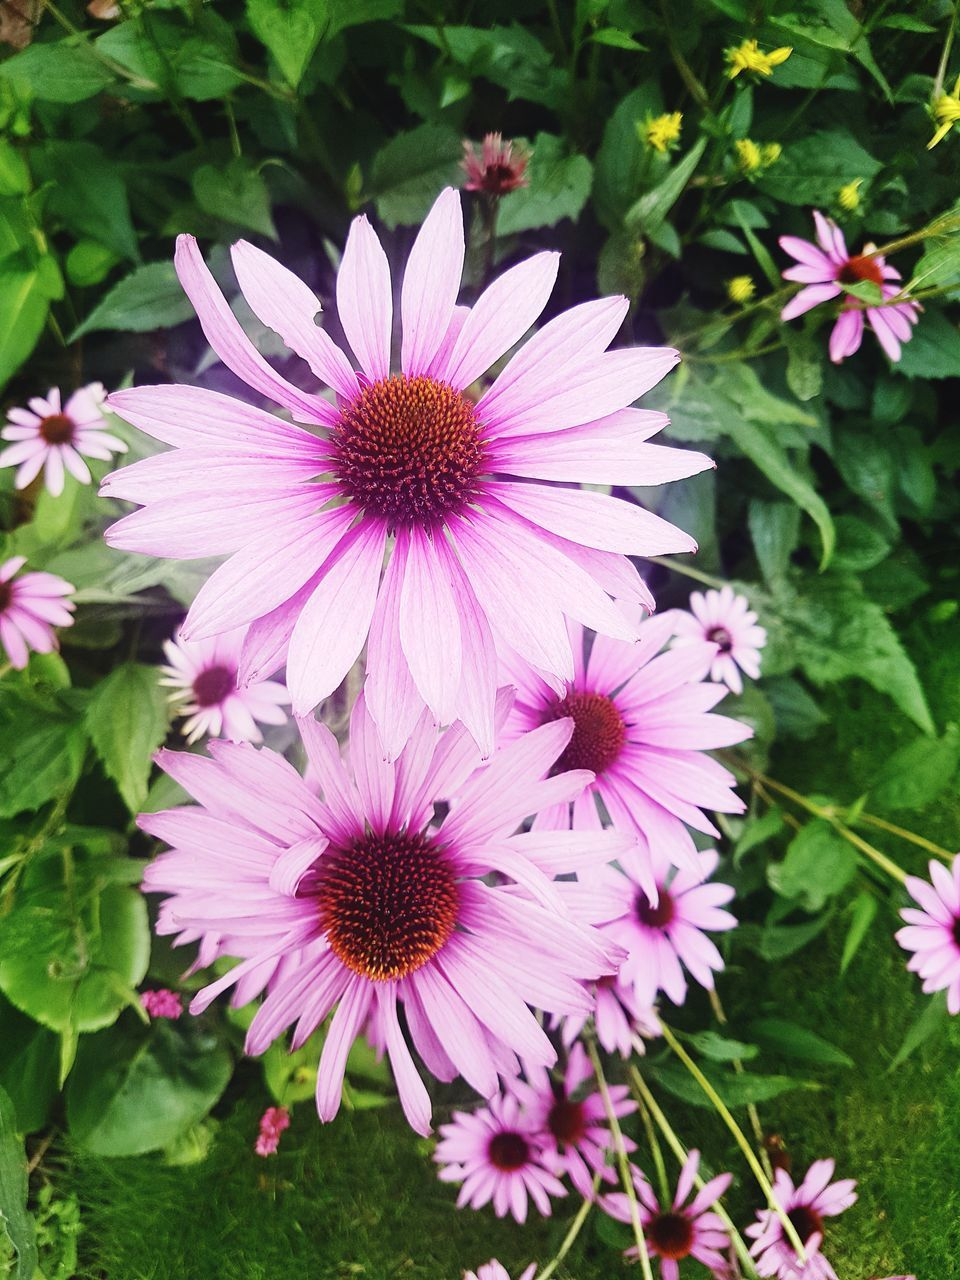 flower, petal, fragility, growth, freshness, nature, flower head, beauty in nature, plant, day, outdoors, blooming, pink color, no people, purple, osteospermum, close-up, eastern purple coneflower